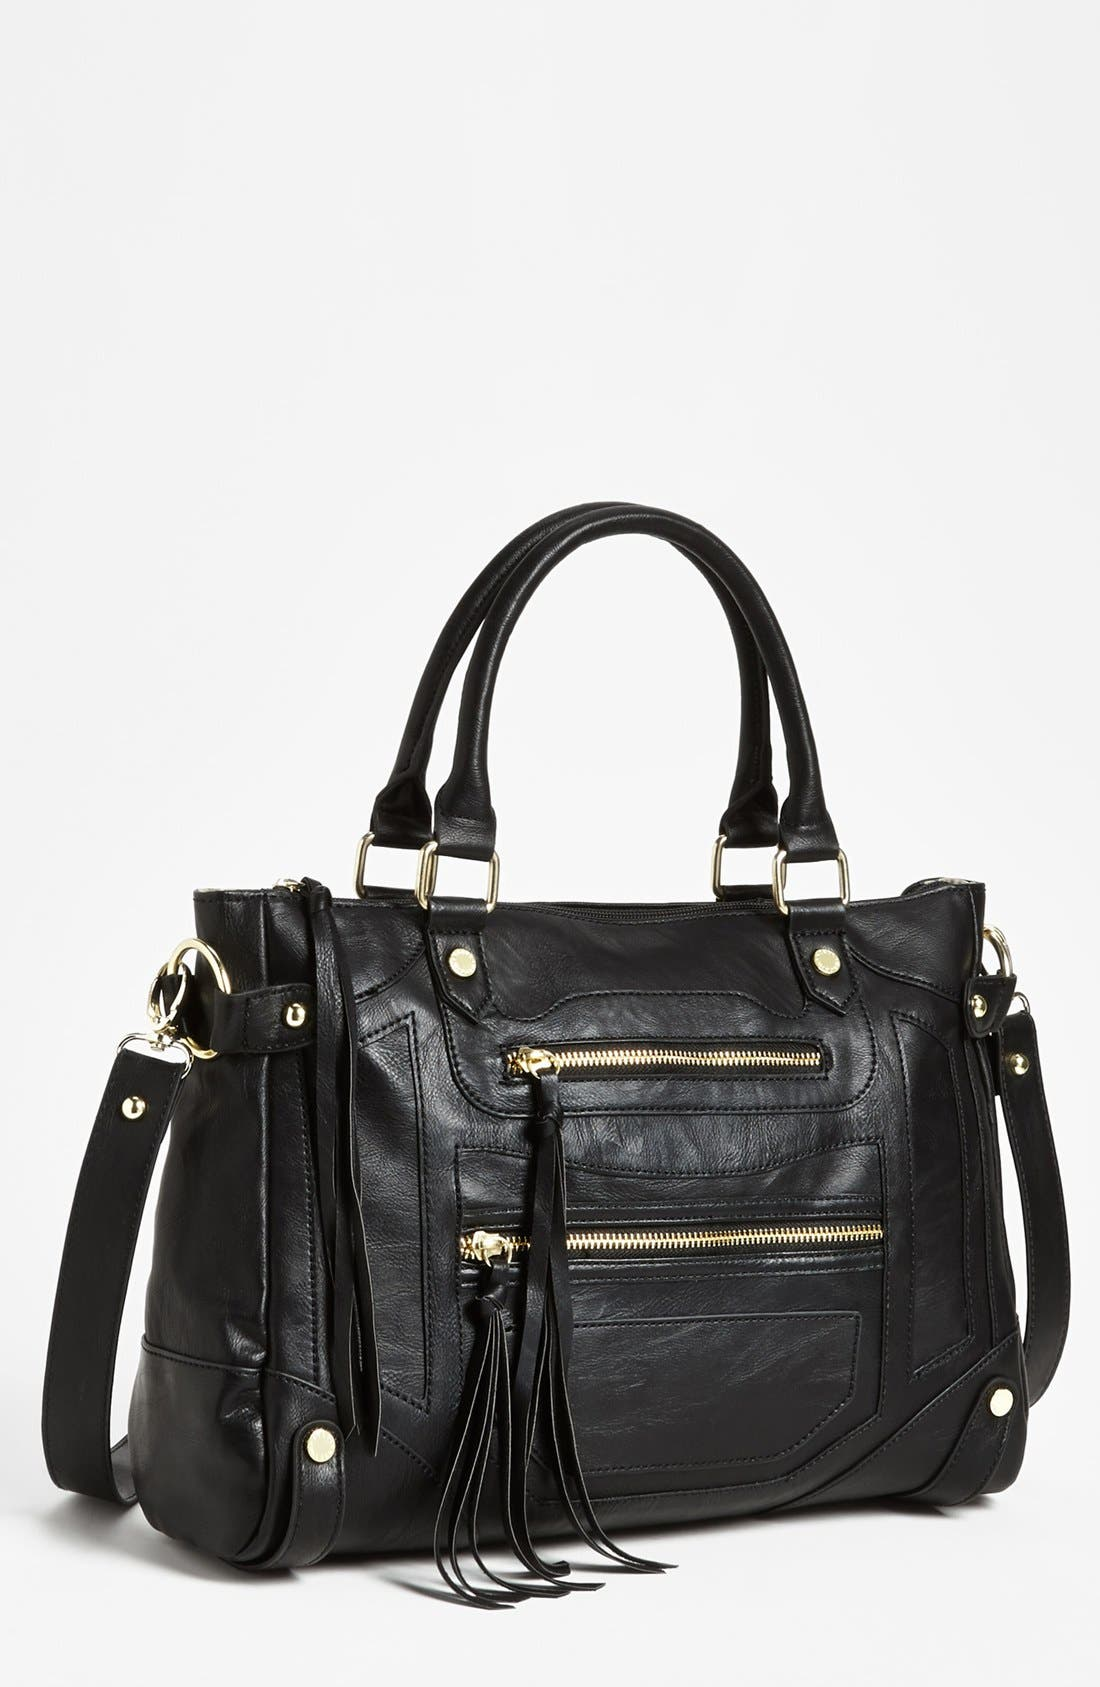 Alternate Image 1 Selected - Steve Madden 'Talia' Satchel